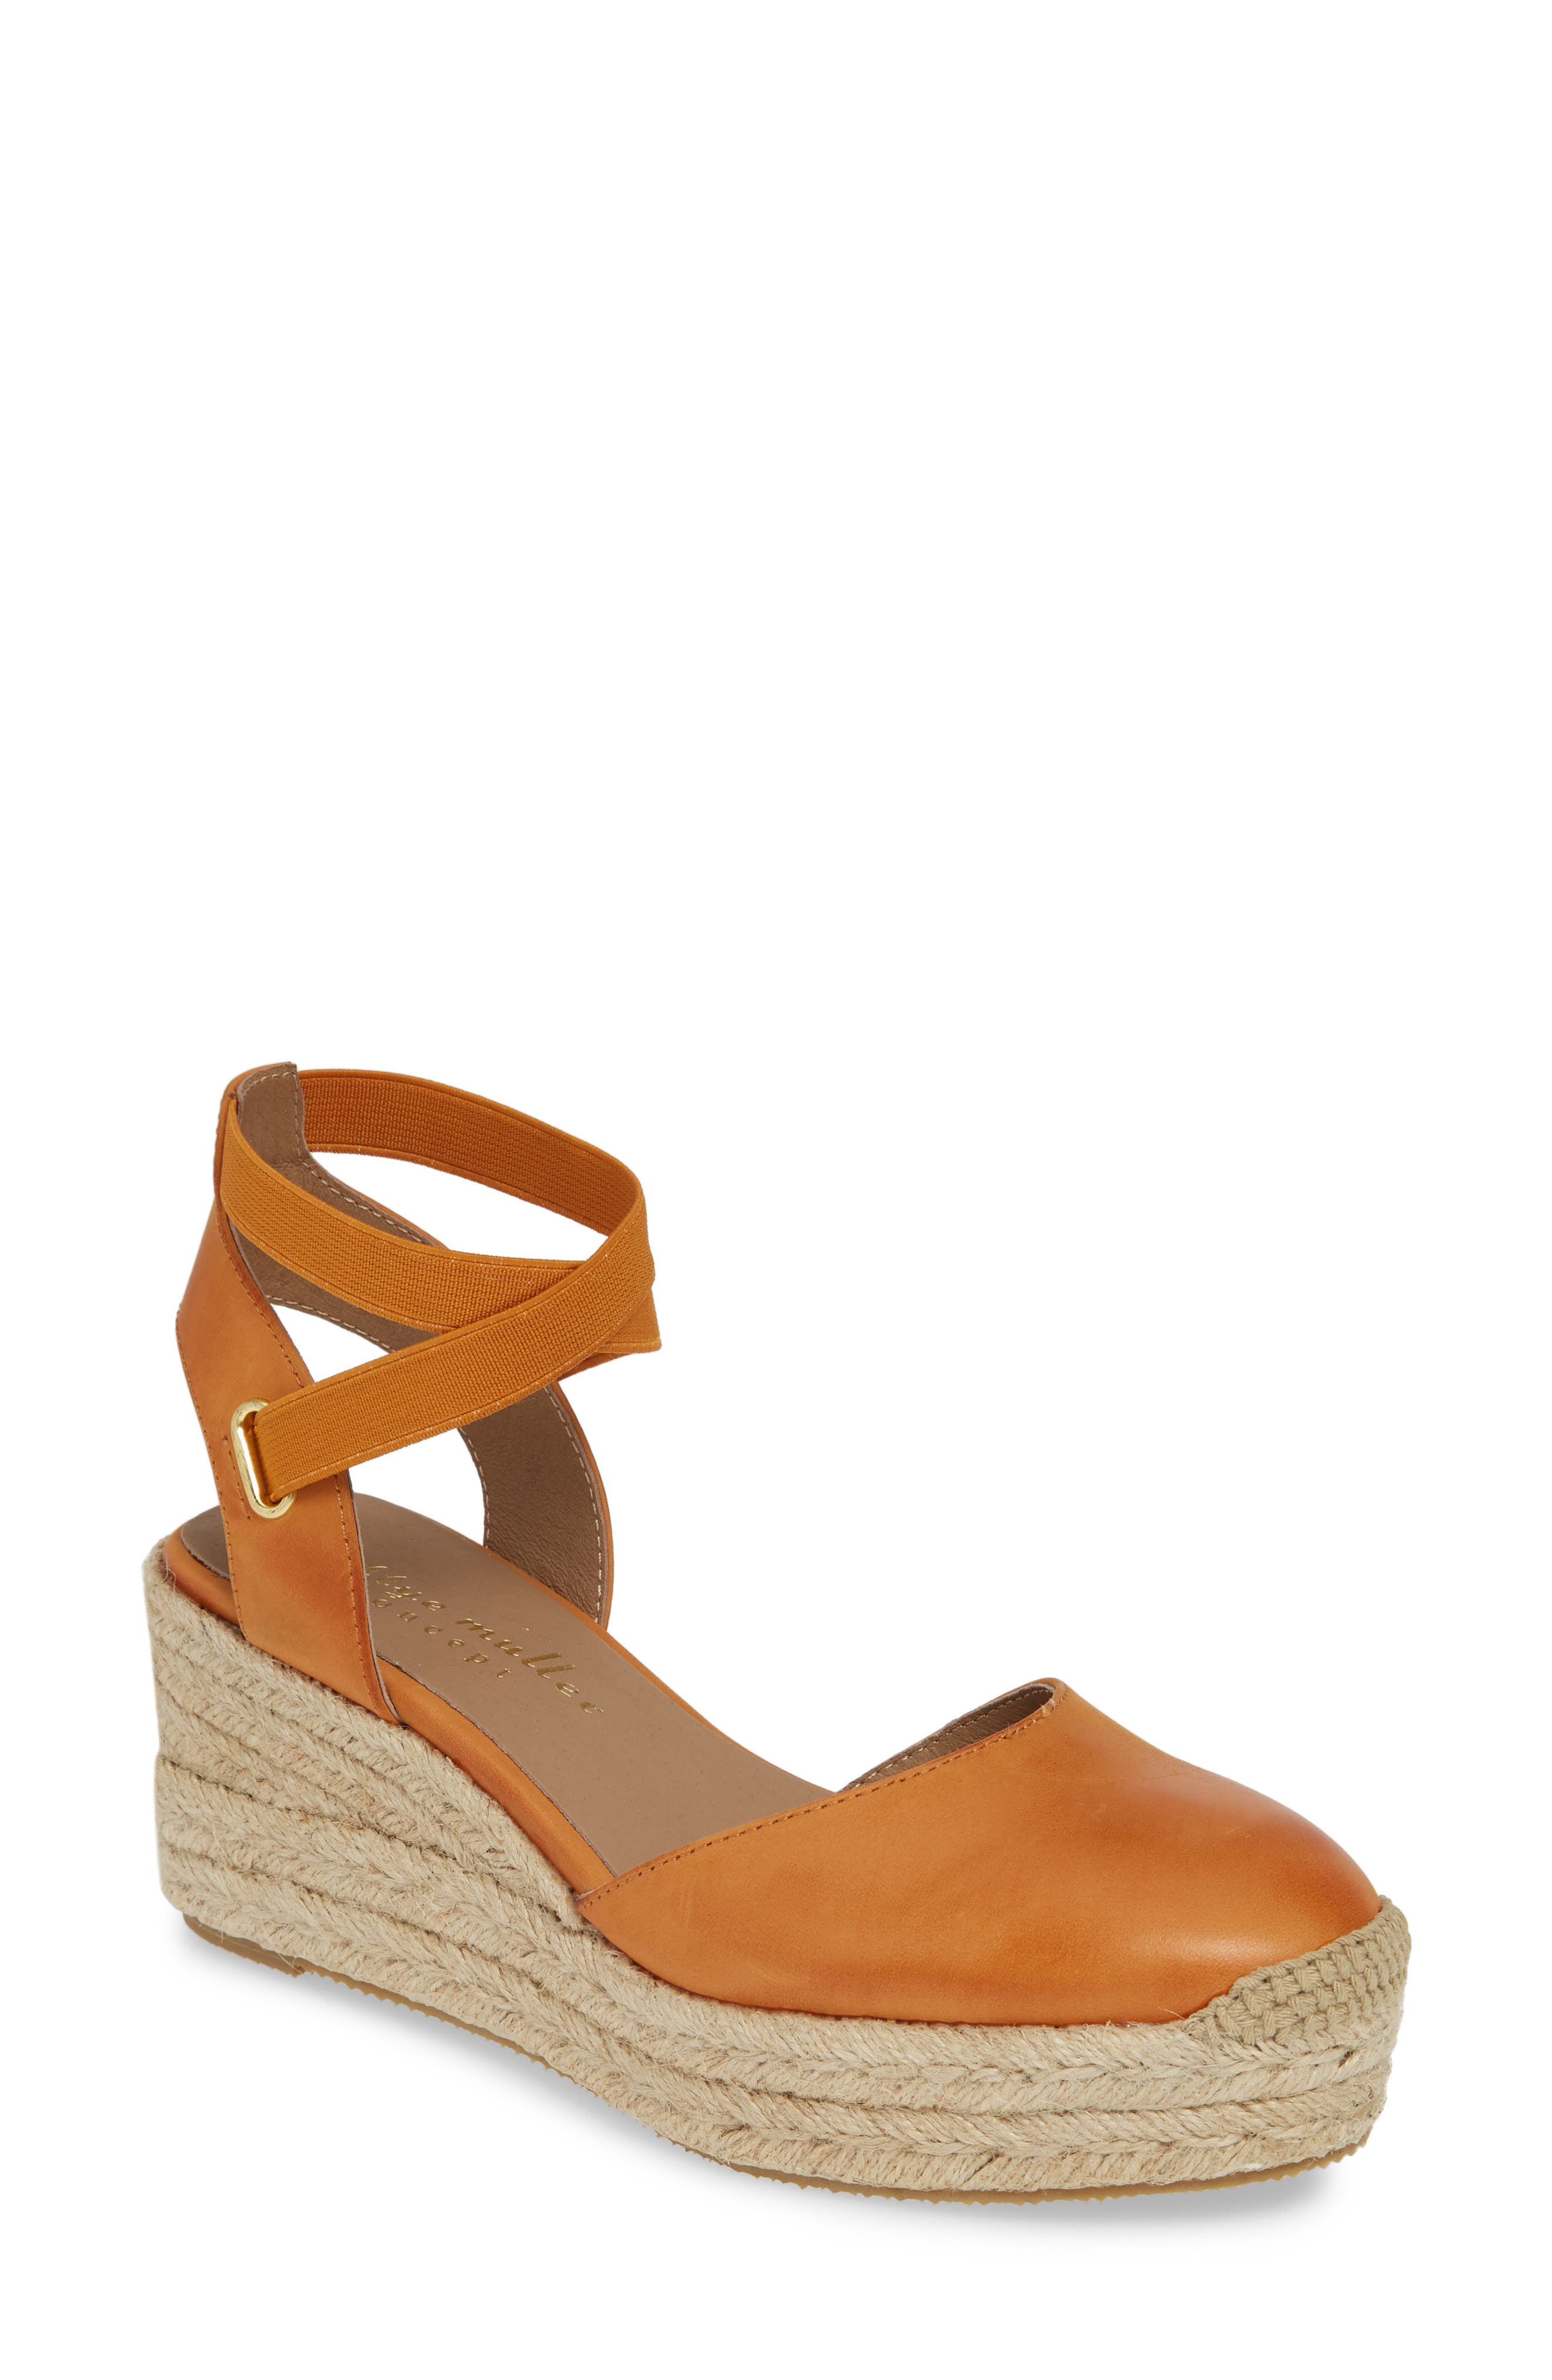 Bettye Muller Concepts Reba Espadrille Wedge, Brown